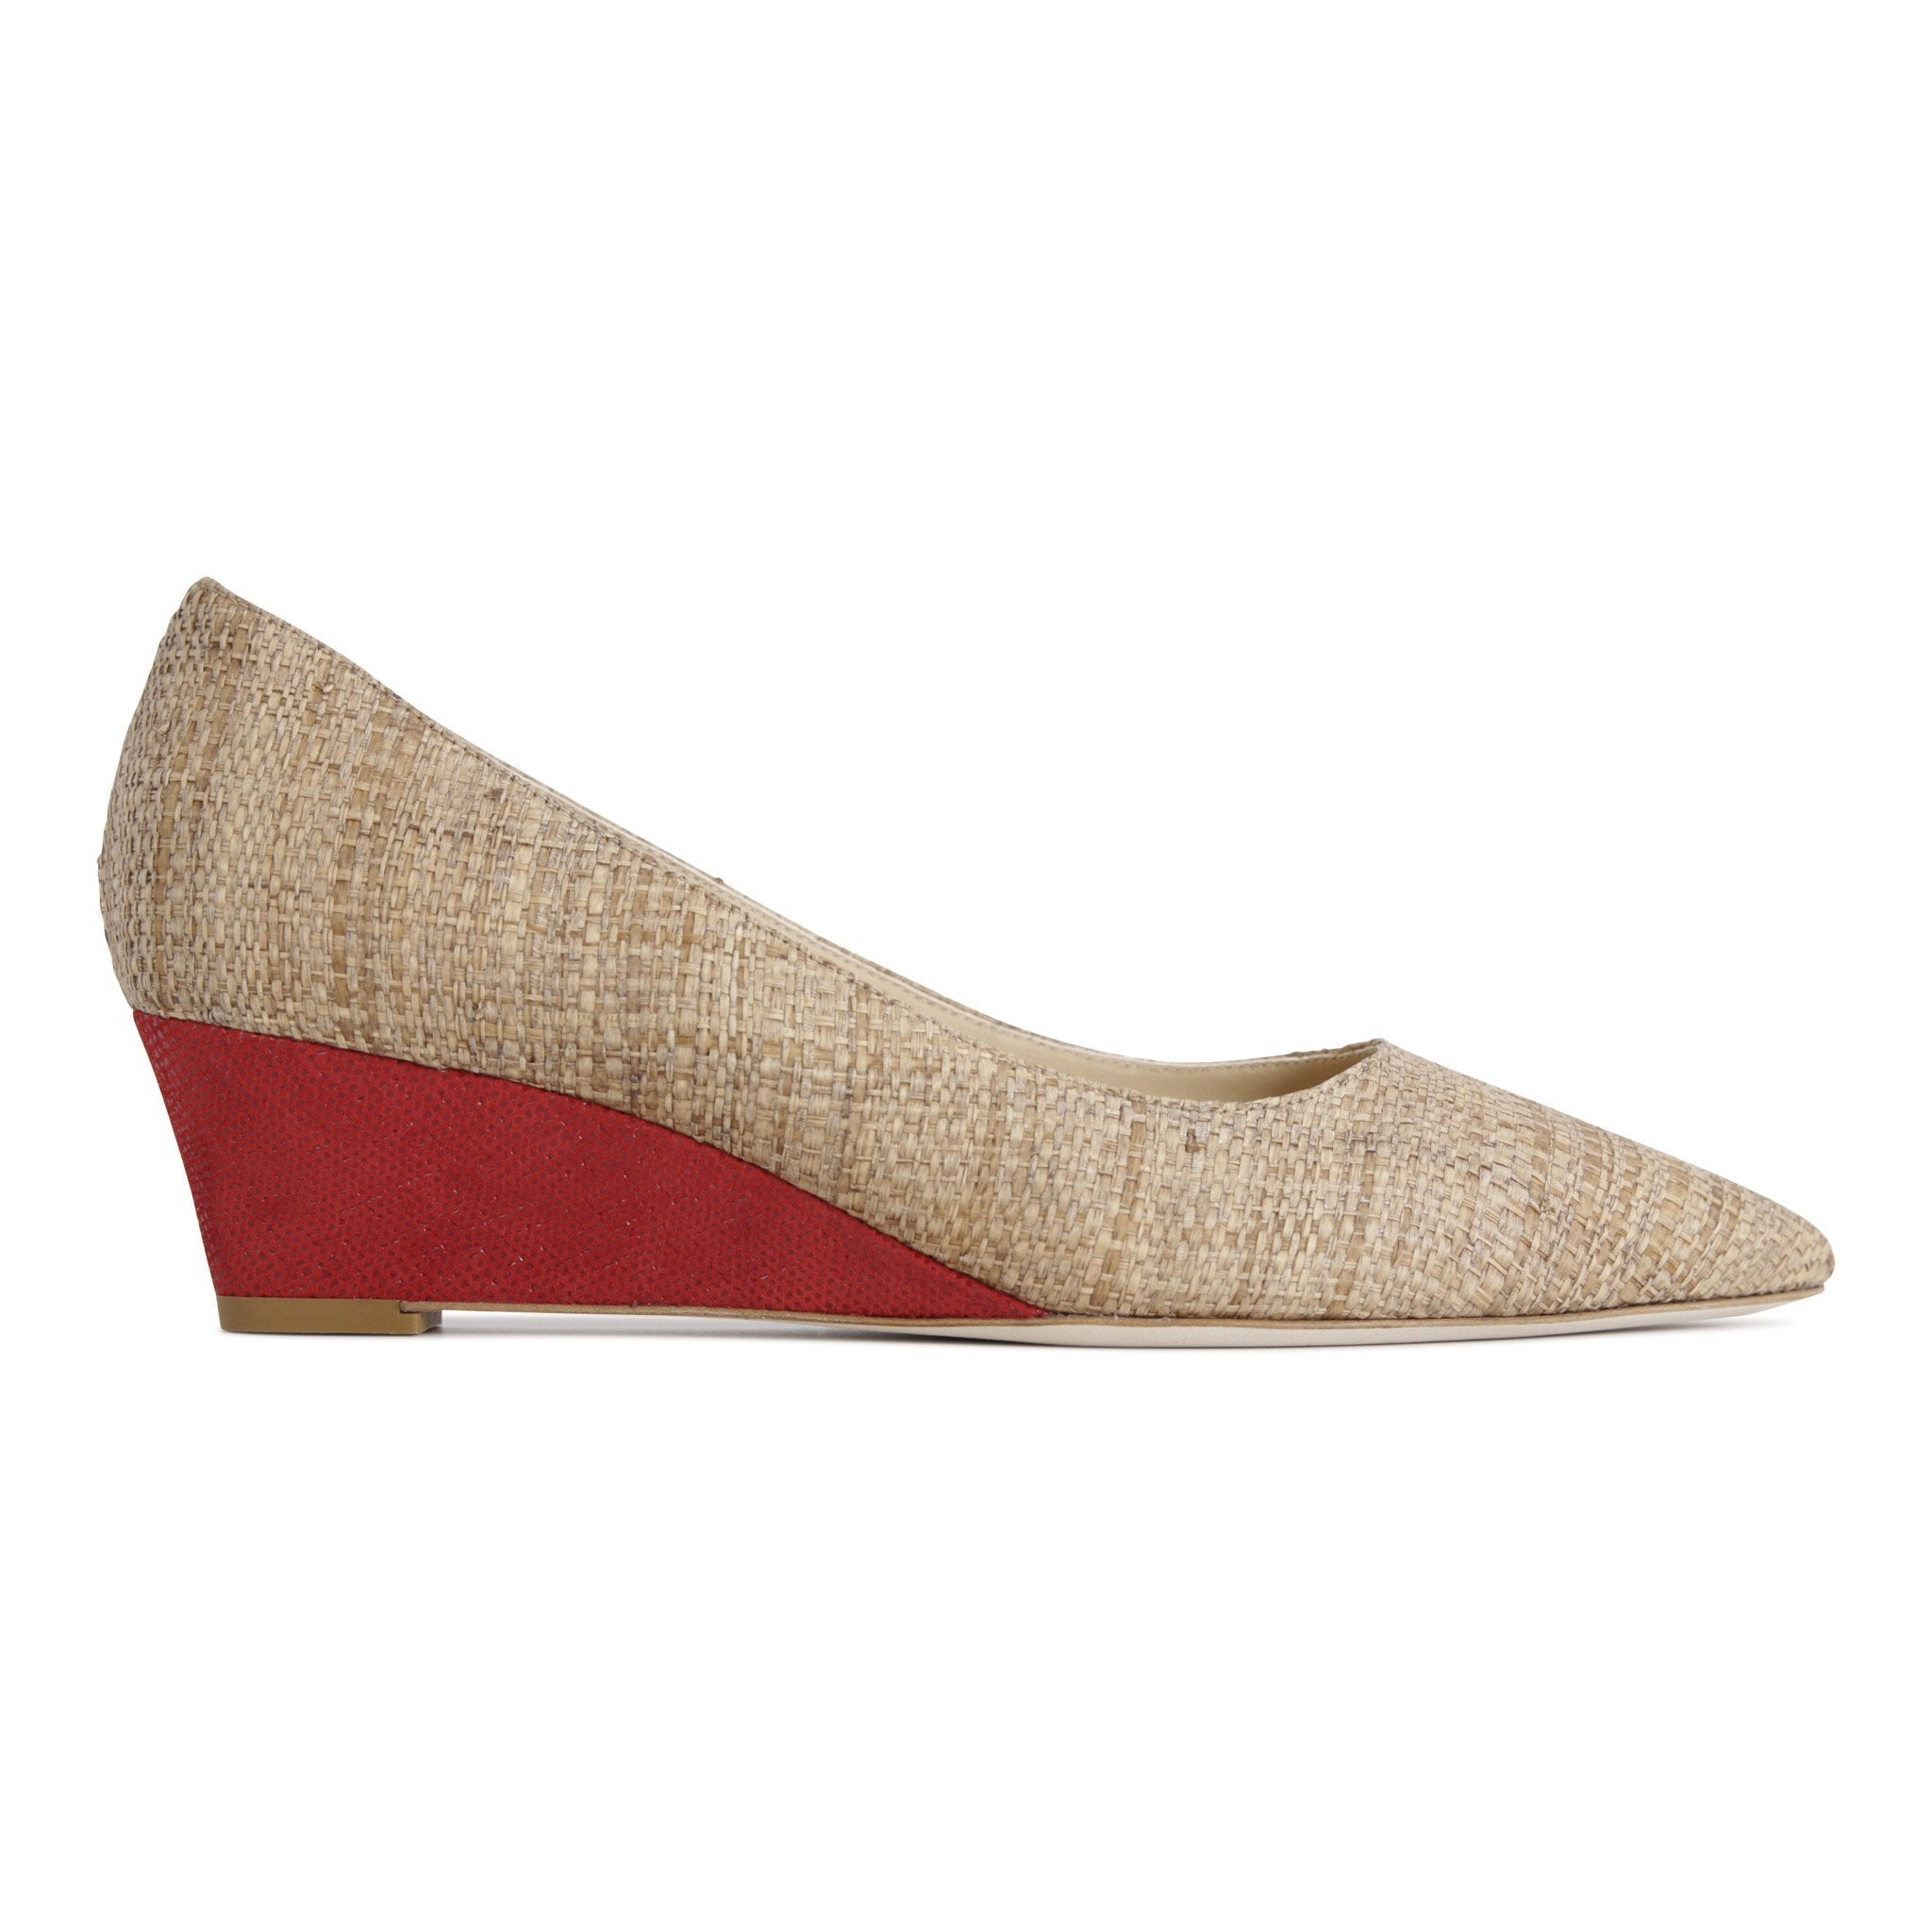 TRENTO - Raffia Natural + Karung Rosso - VIAJIYU Shoes